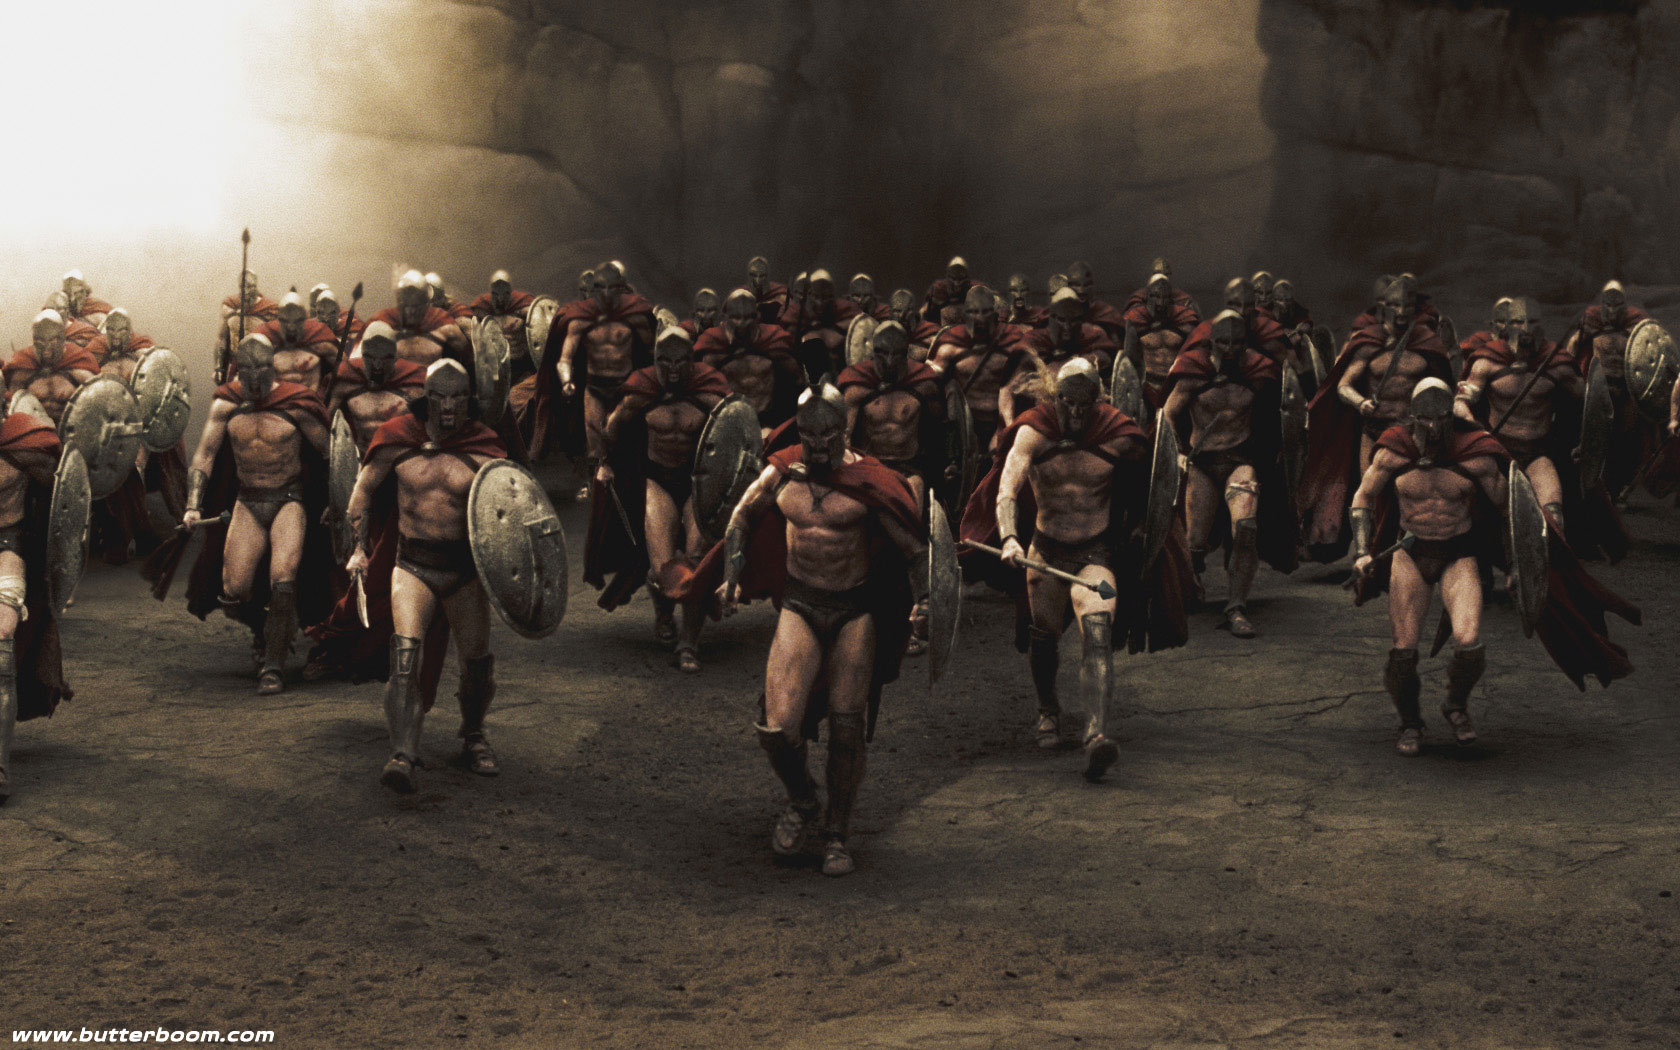 real sparta vs movie 300 300 sparta the real story 480 bc movie download in hd mp4, 3gp, 720p blu-ray, hd 300 sparta the real story 480 bc hd mobile movie video free download, mp4 300 sparta the real story 480 bc movie, 3gp 300 sparta the real story 480 bc full mobile movie download.